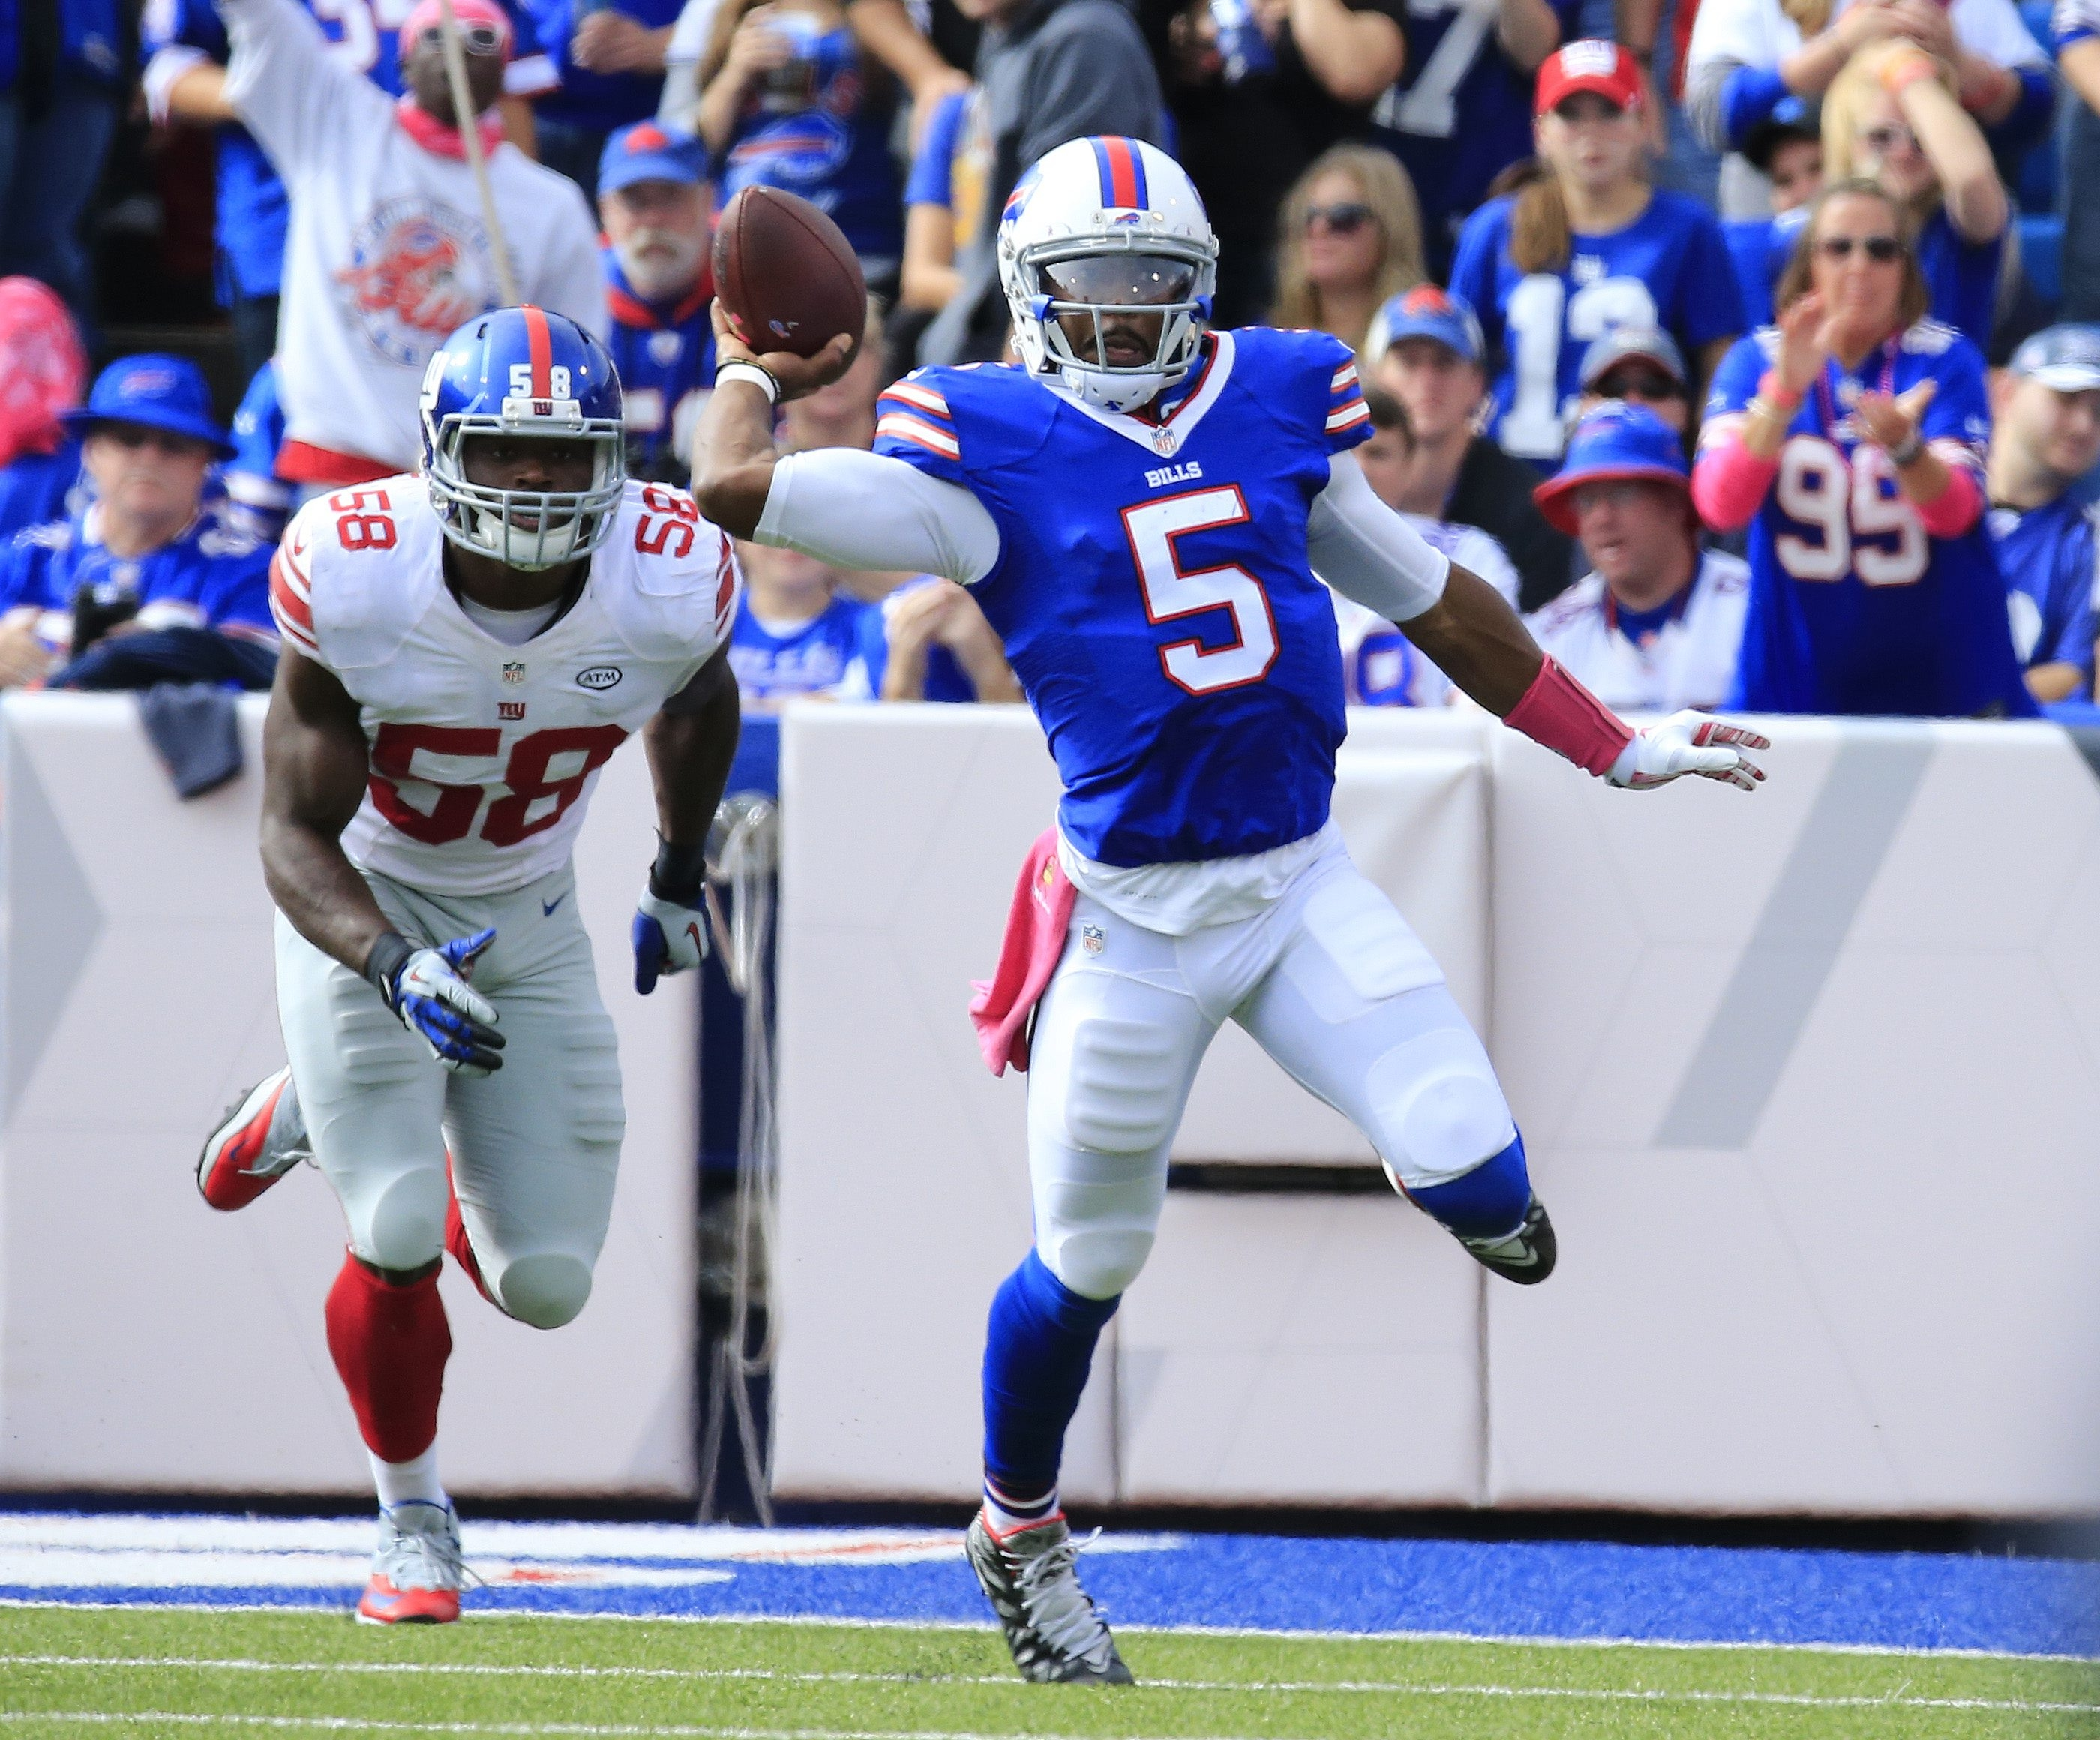 Buffalo Bills  Tyrod Taylor throws against the New York Giants  during third quarter action at Ralph Wilson Stadium on Sunday, Oct. 4, 2015.  (Harry Scull Jr./Buffalo News)